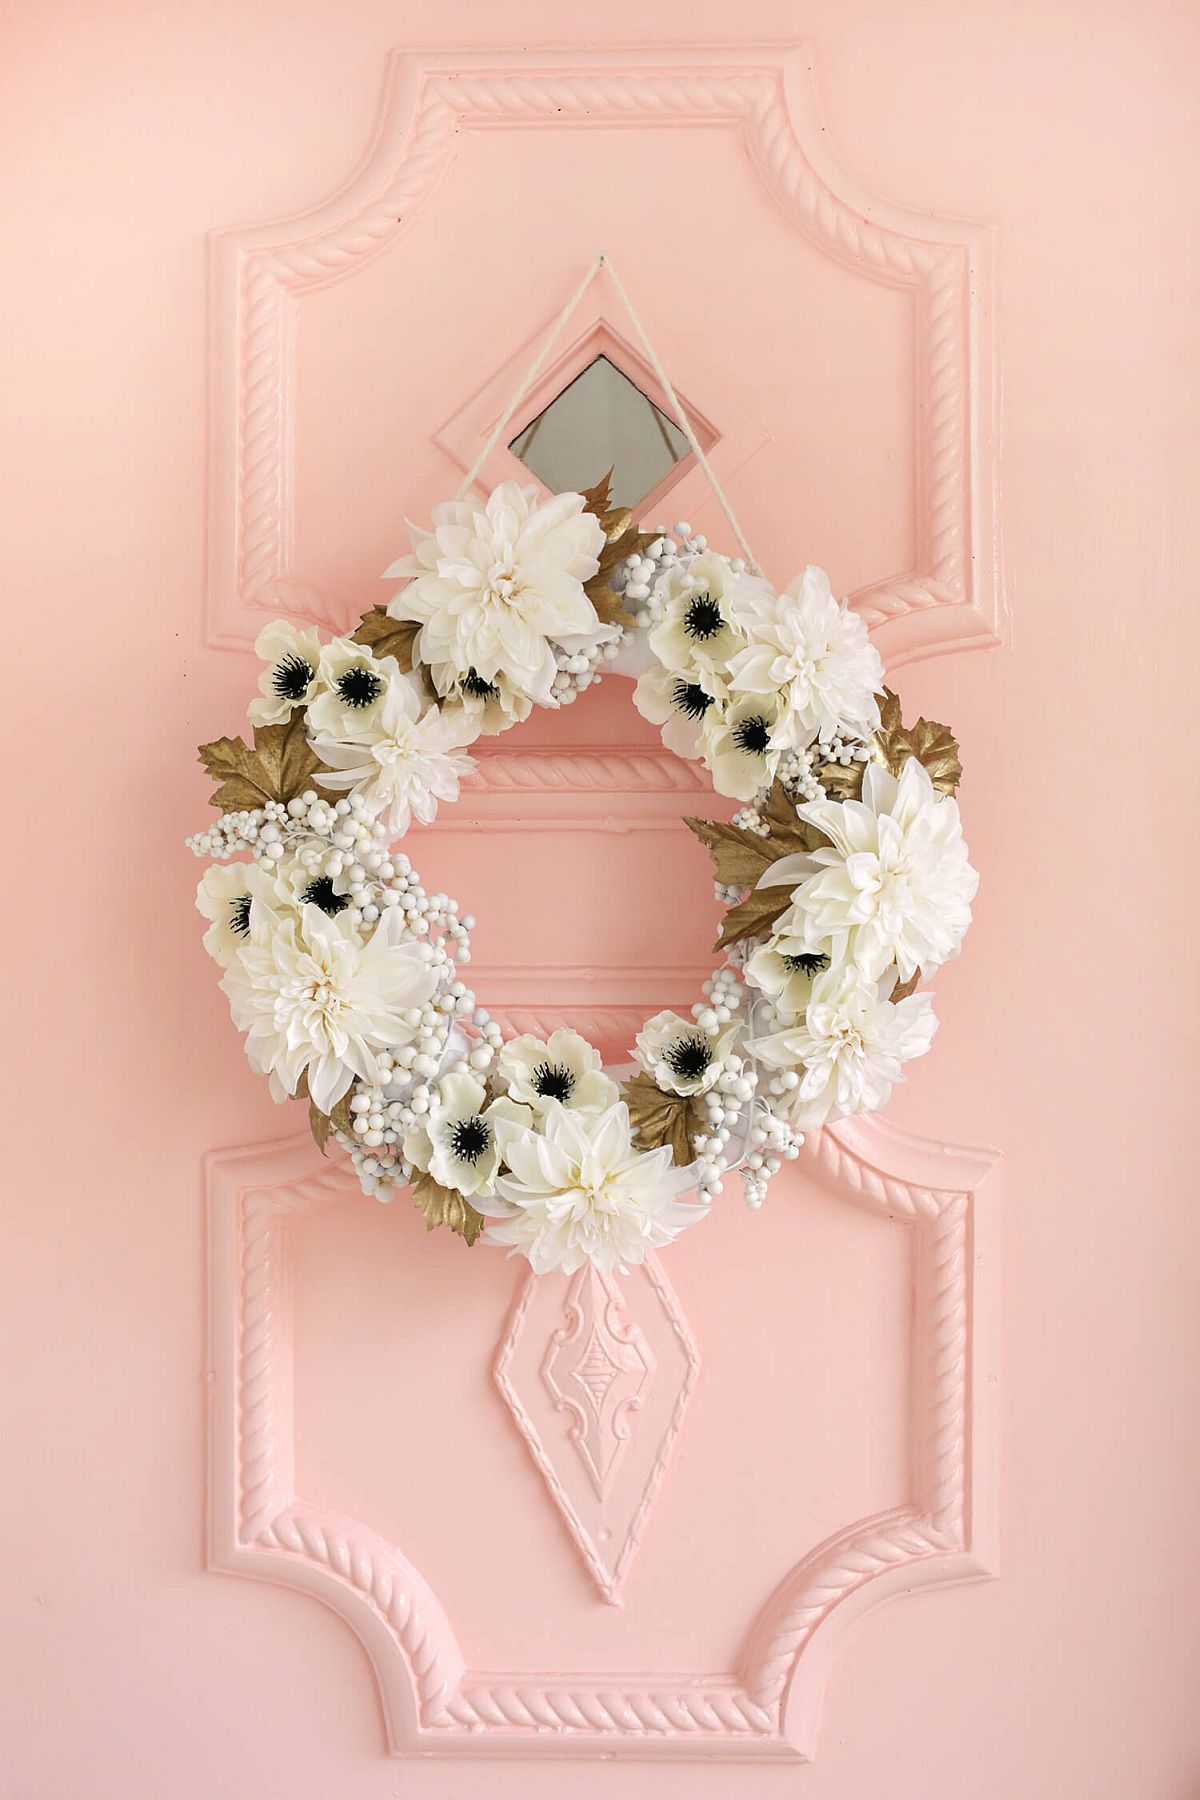 Exquisite white and gold DIY fall wreath